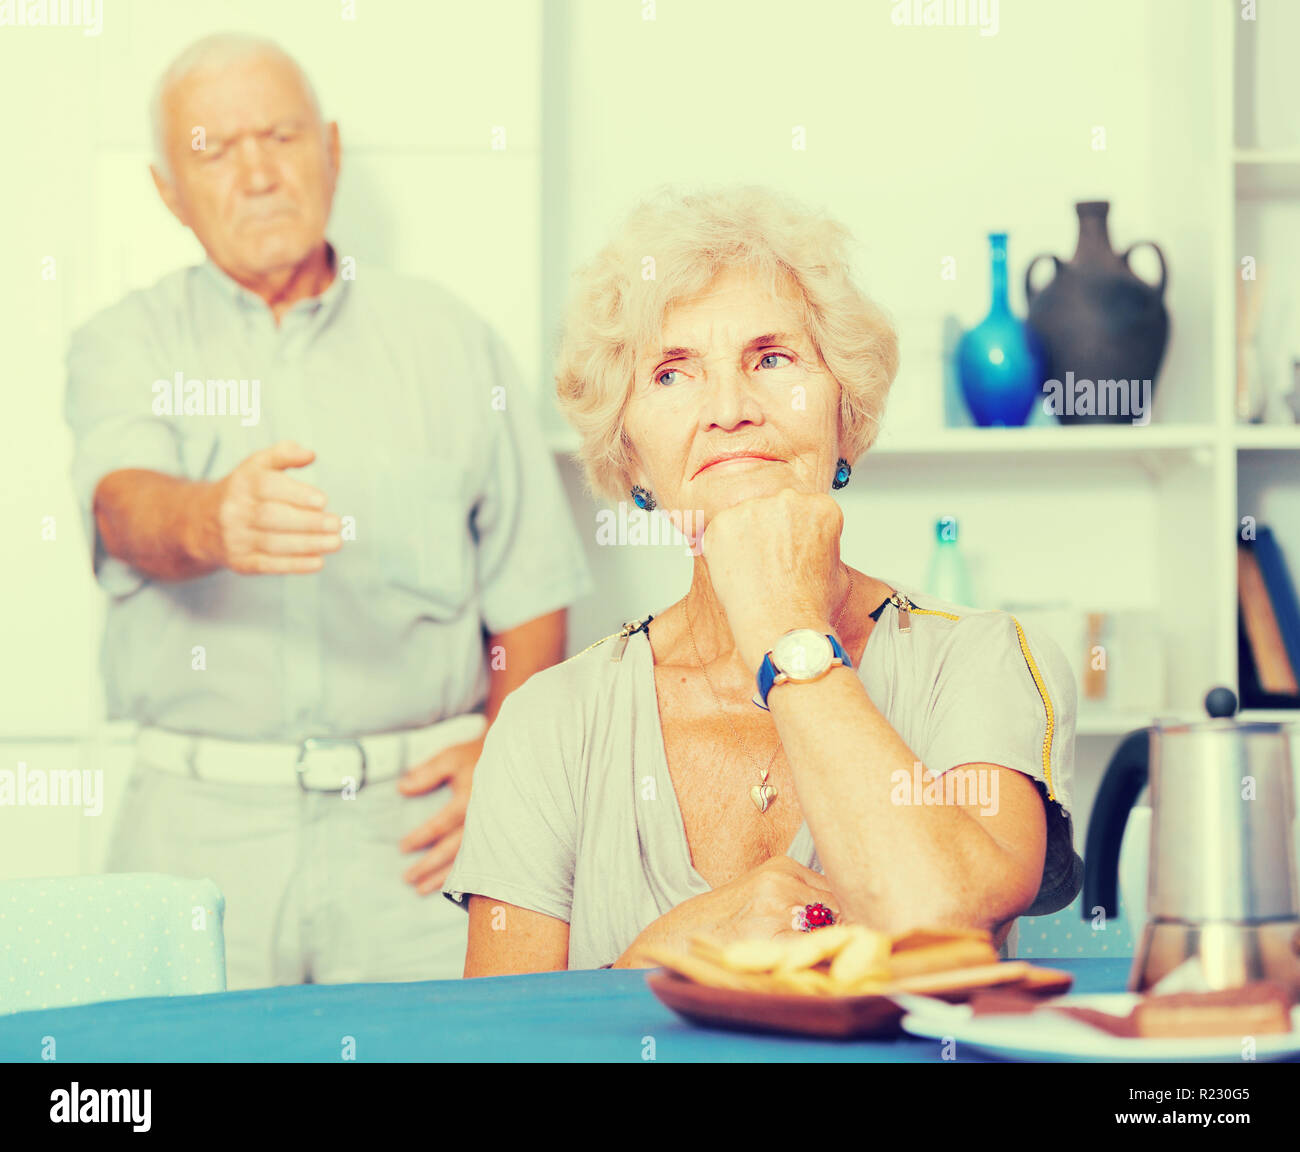 Upset mature woman dont speaking after discord with man standing behind - Stock Image